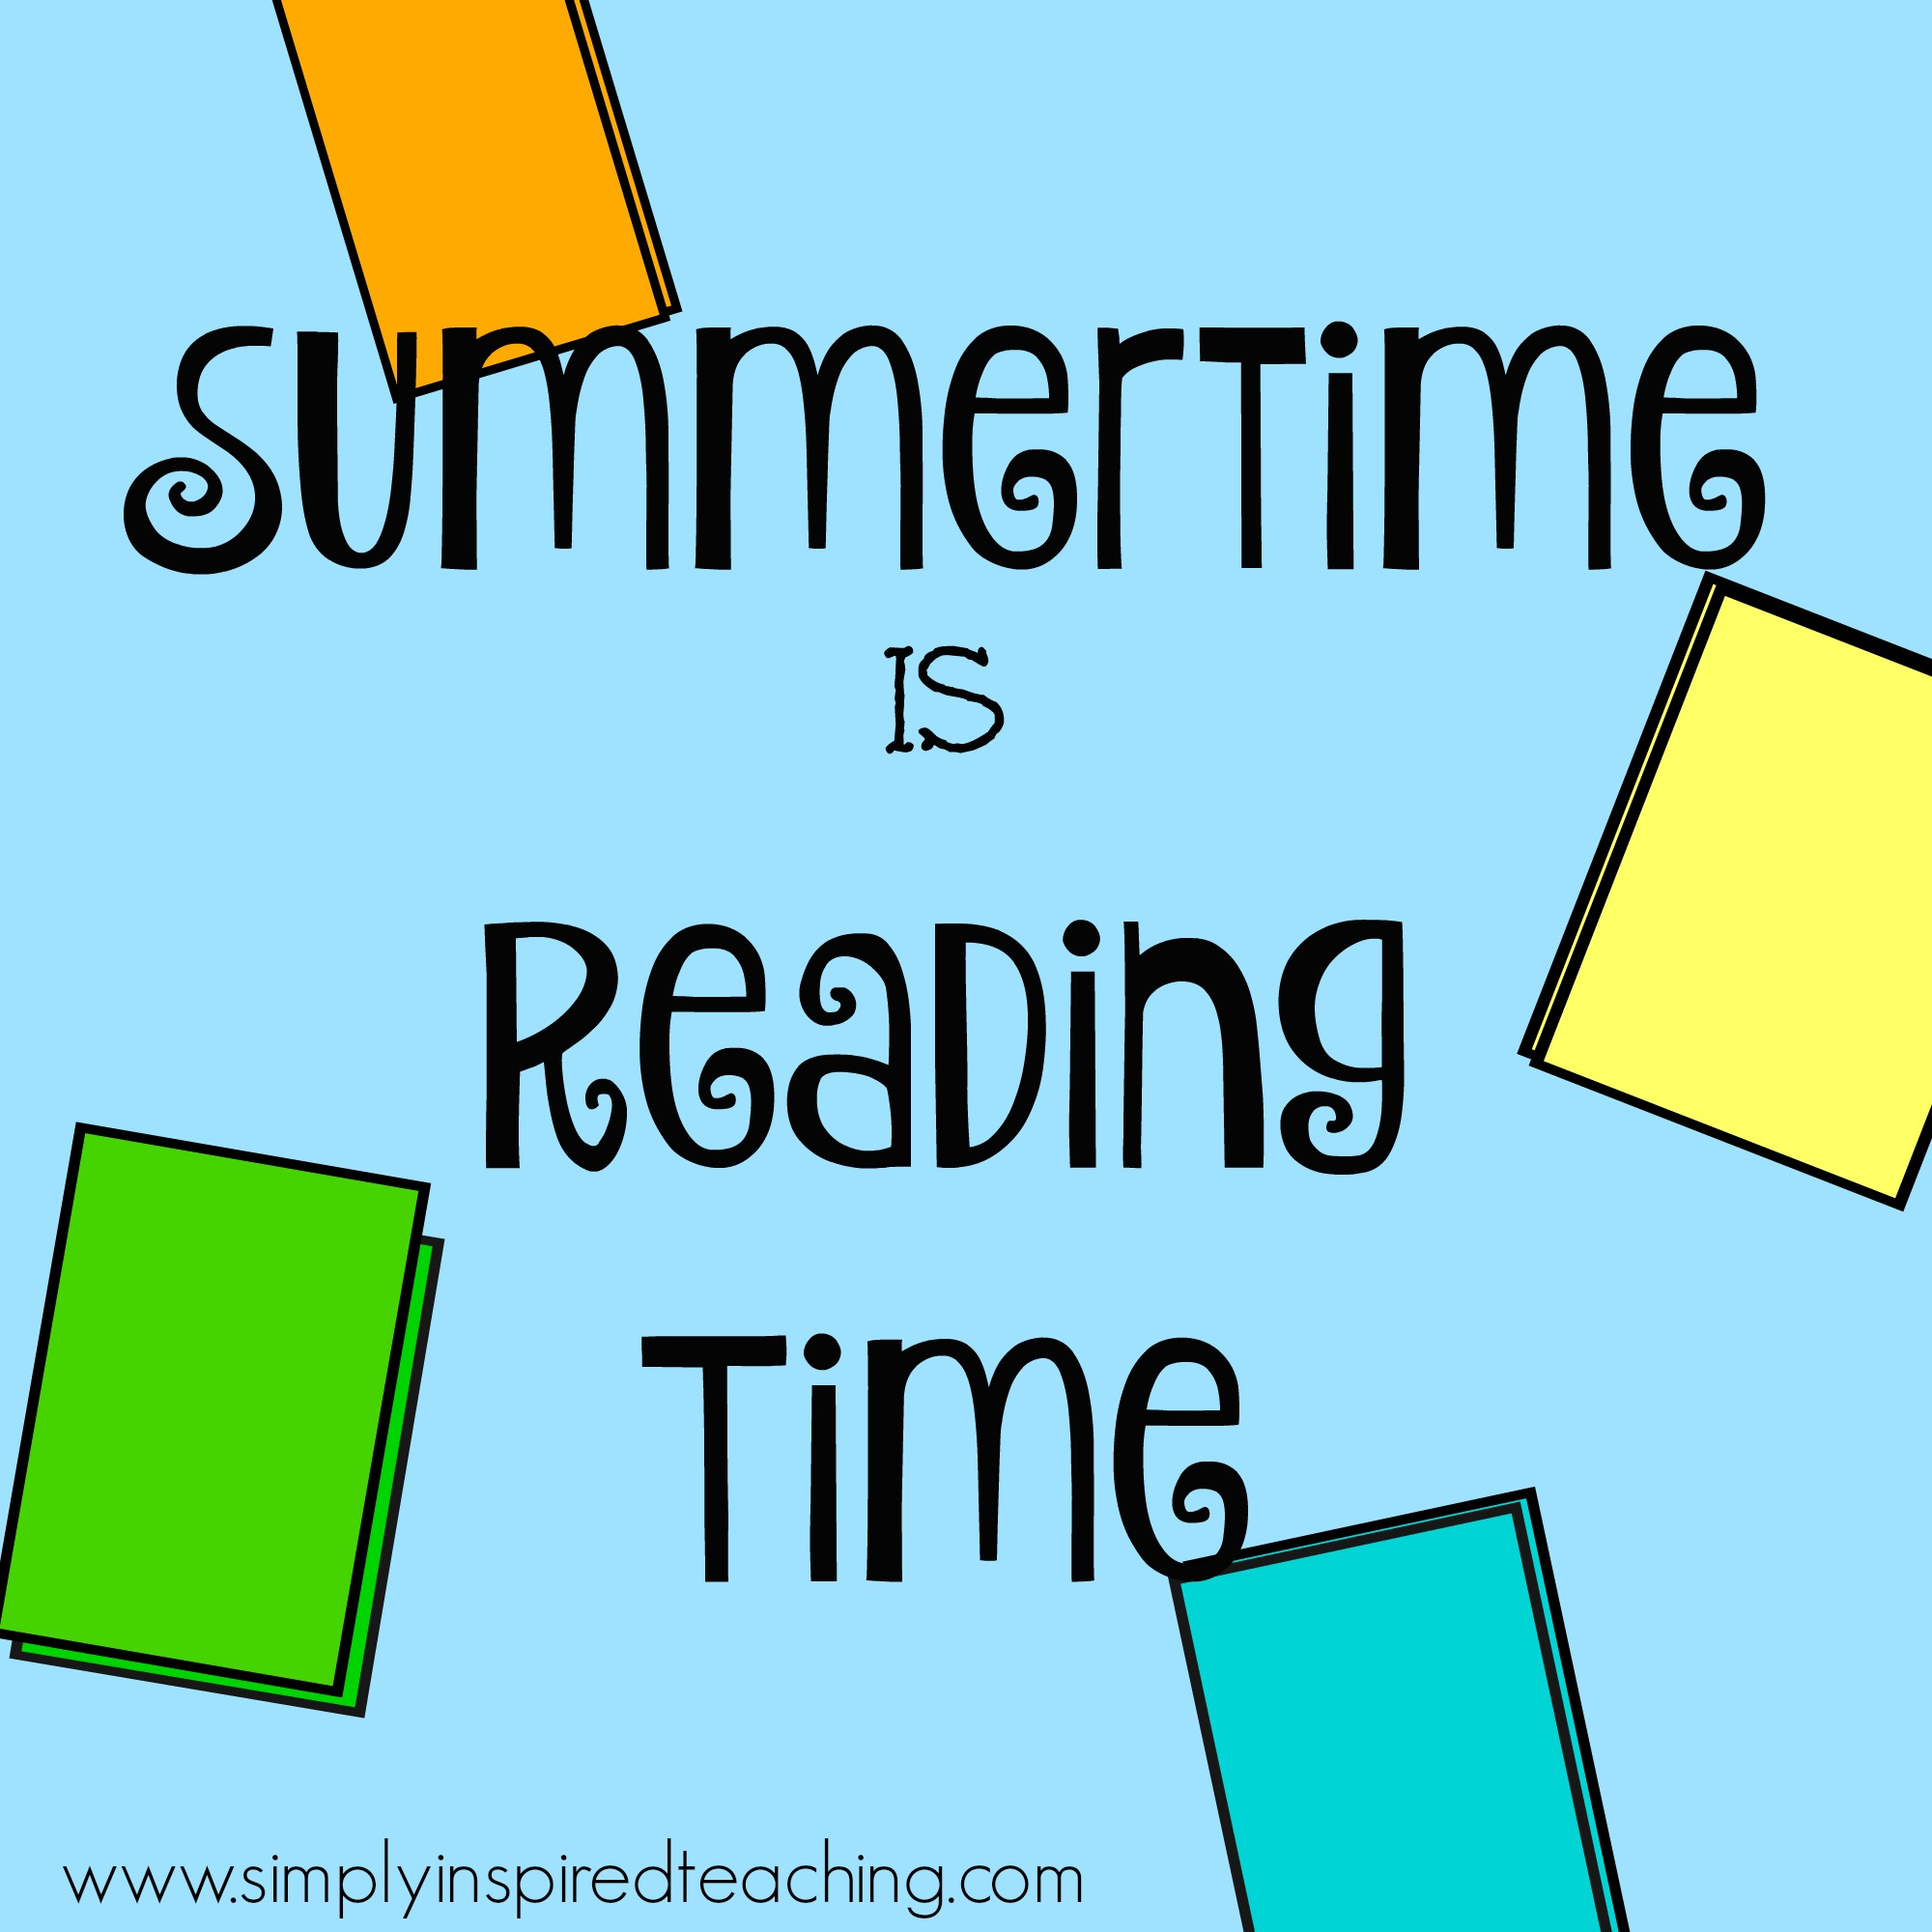 summertime is reading time